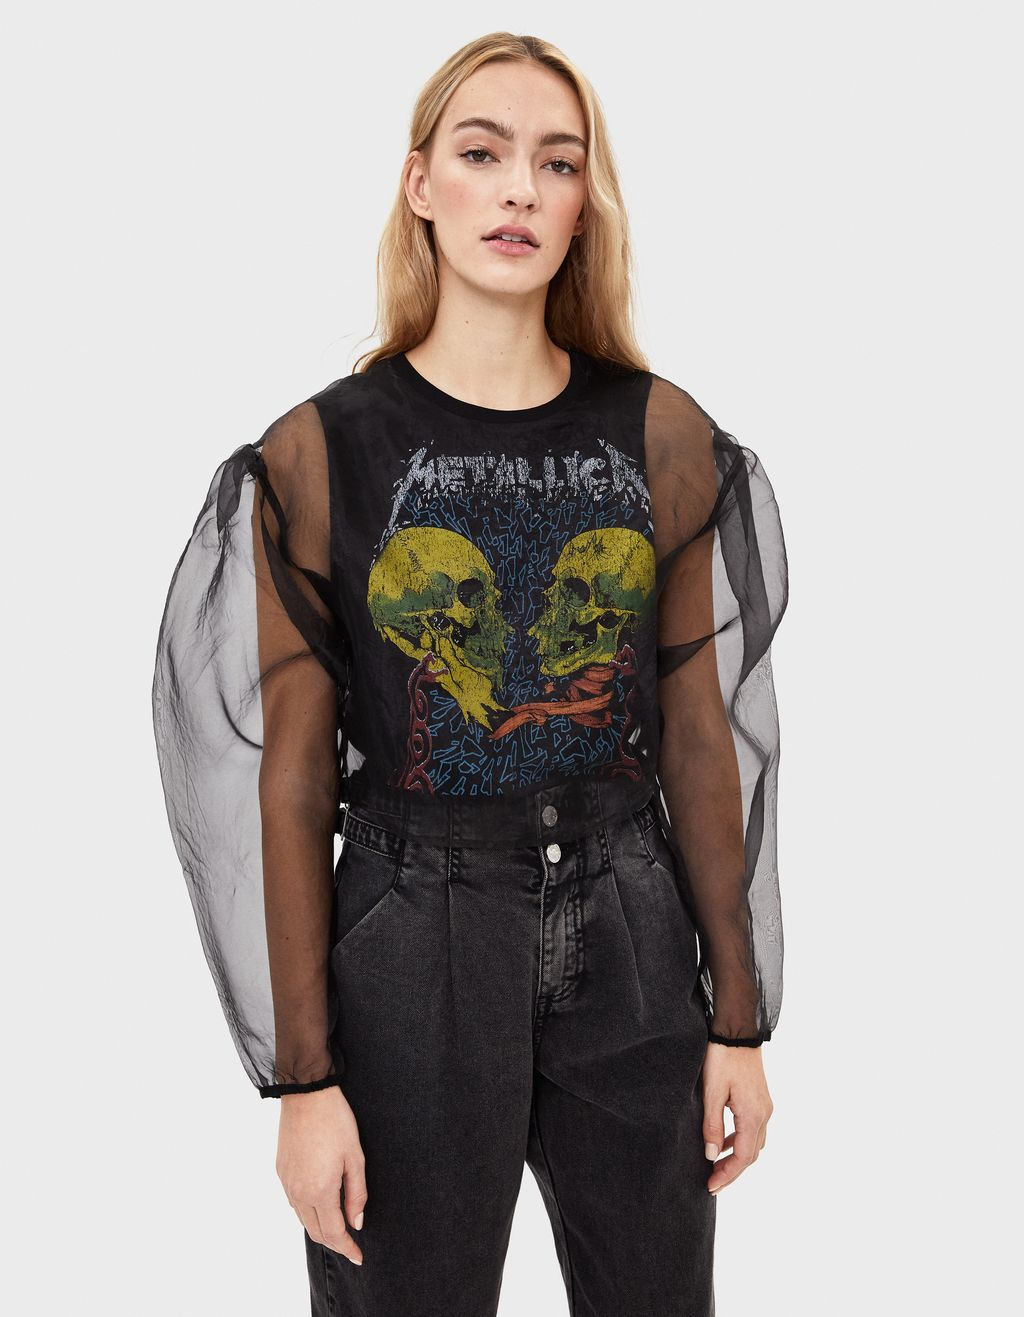 Metallica organza top